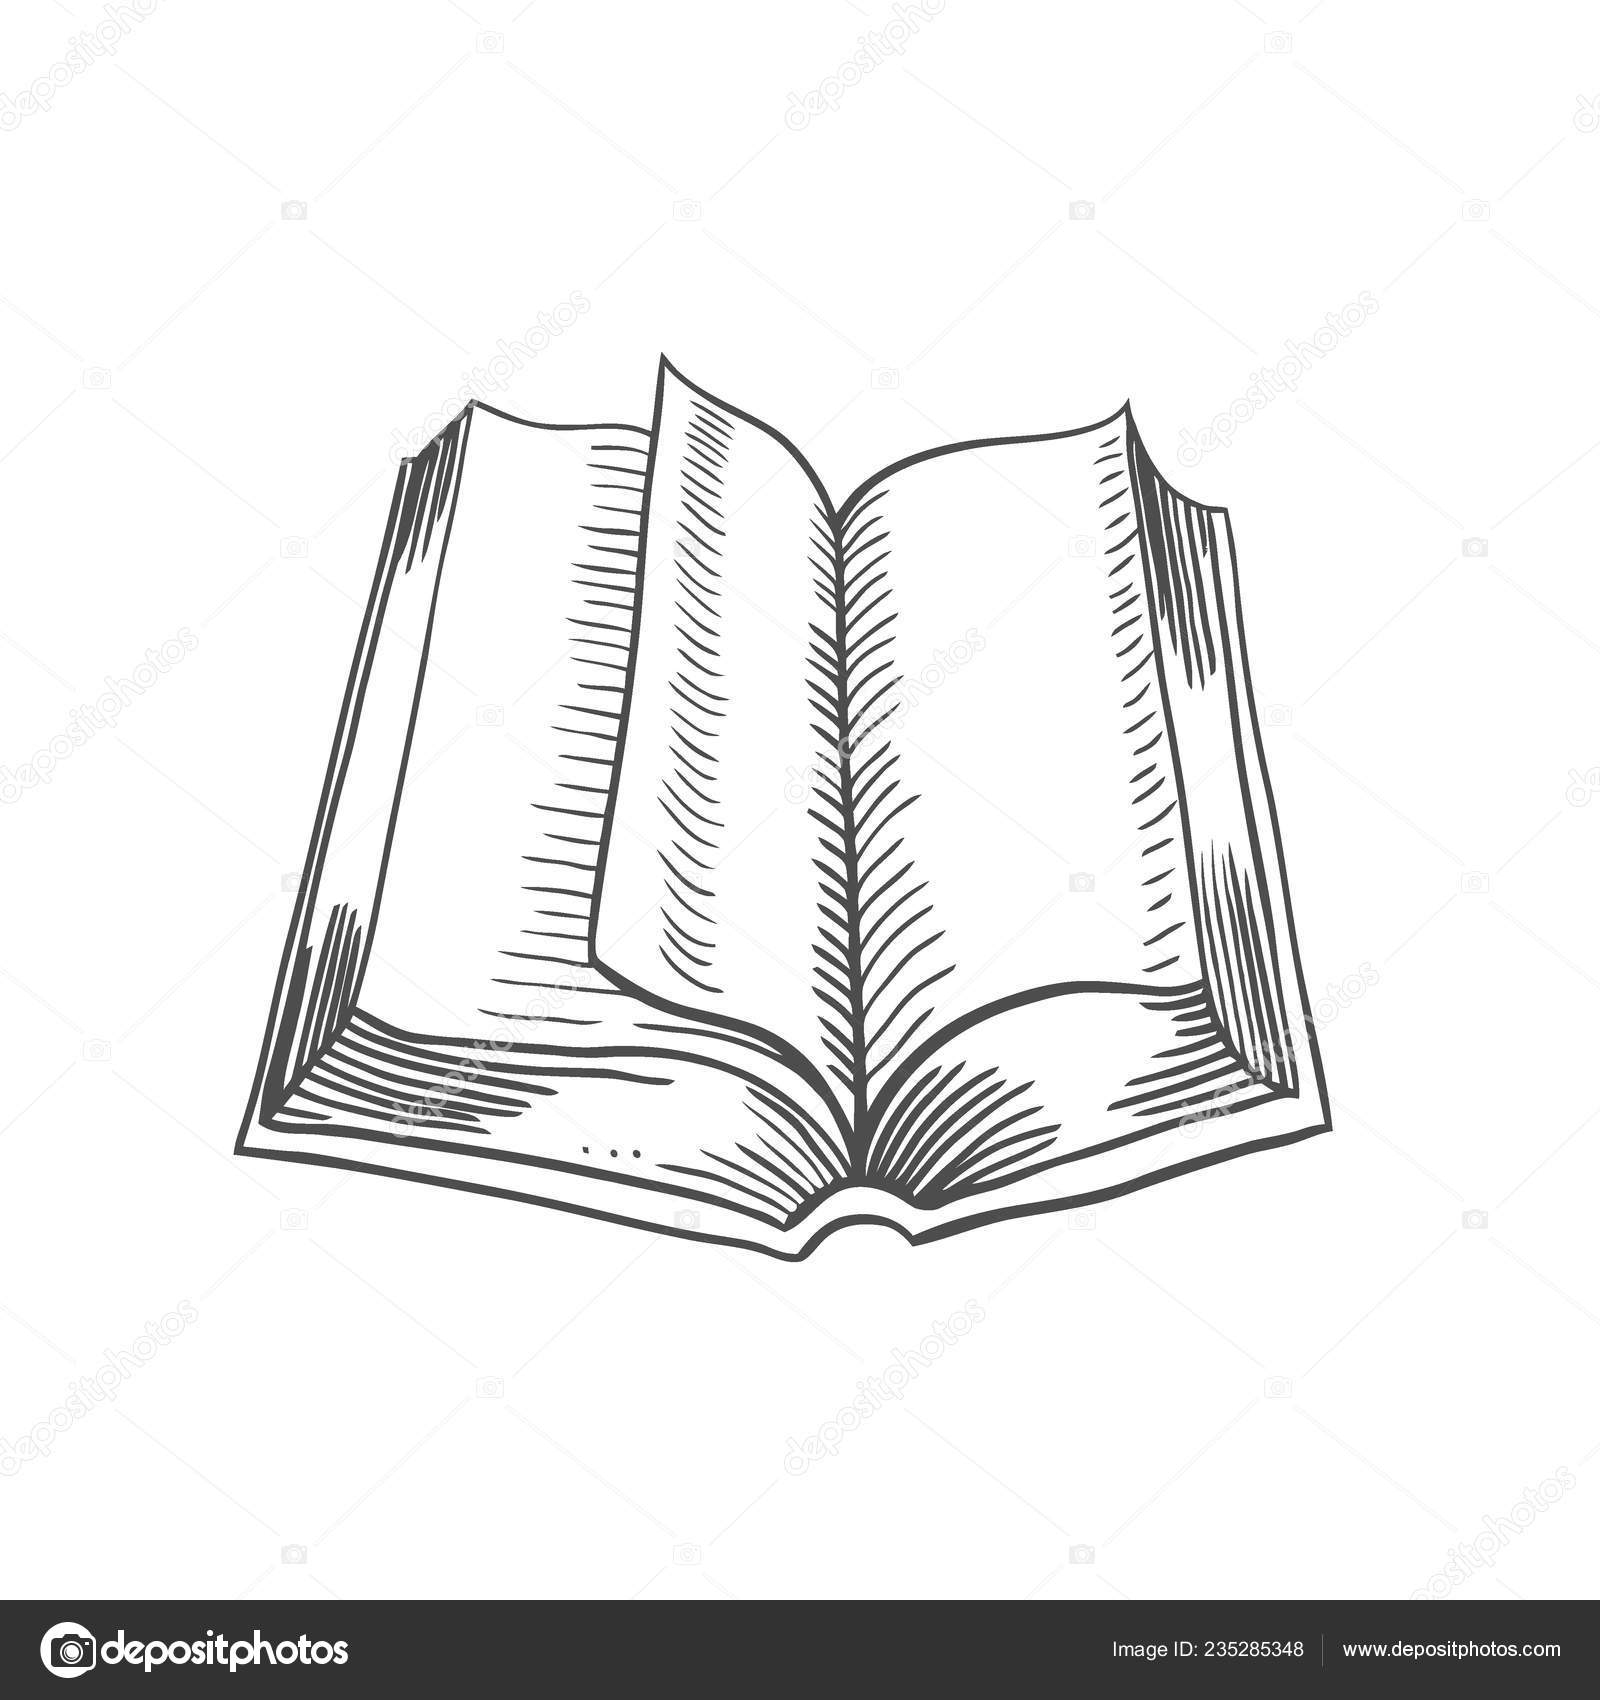 How to draw an open book standing up | Open Book Isolated